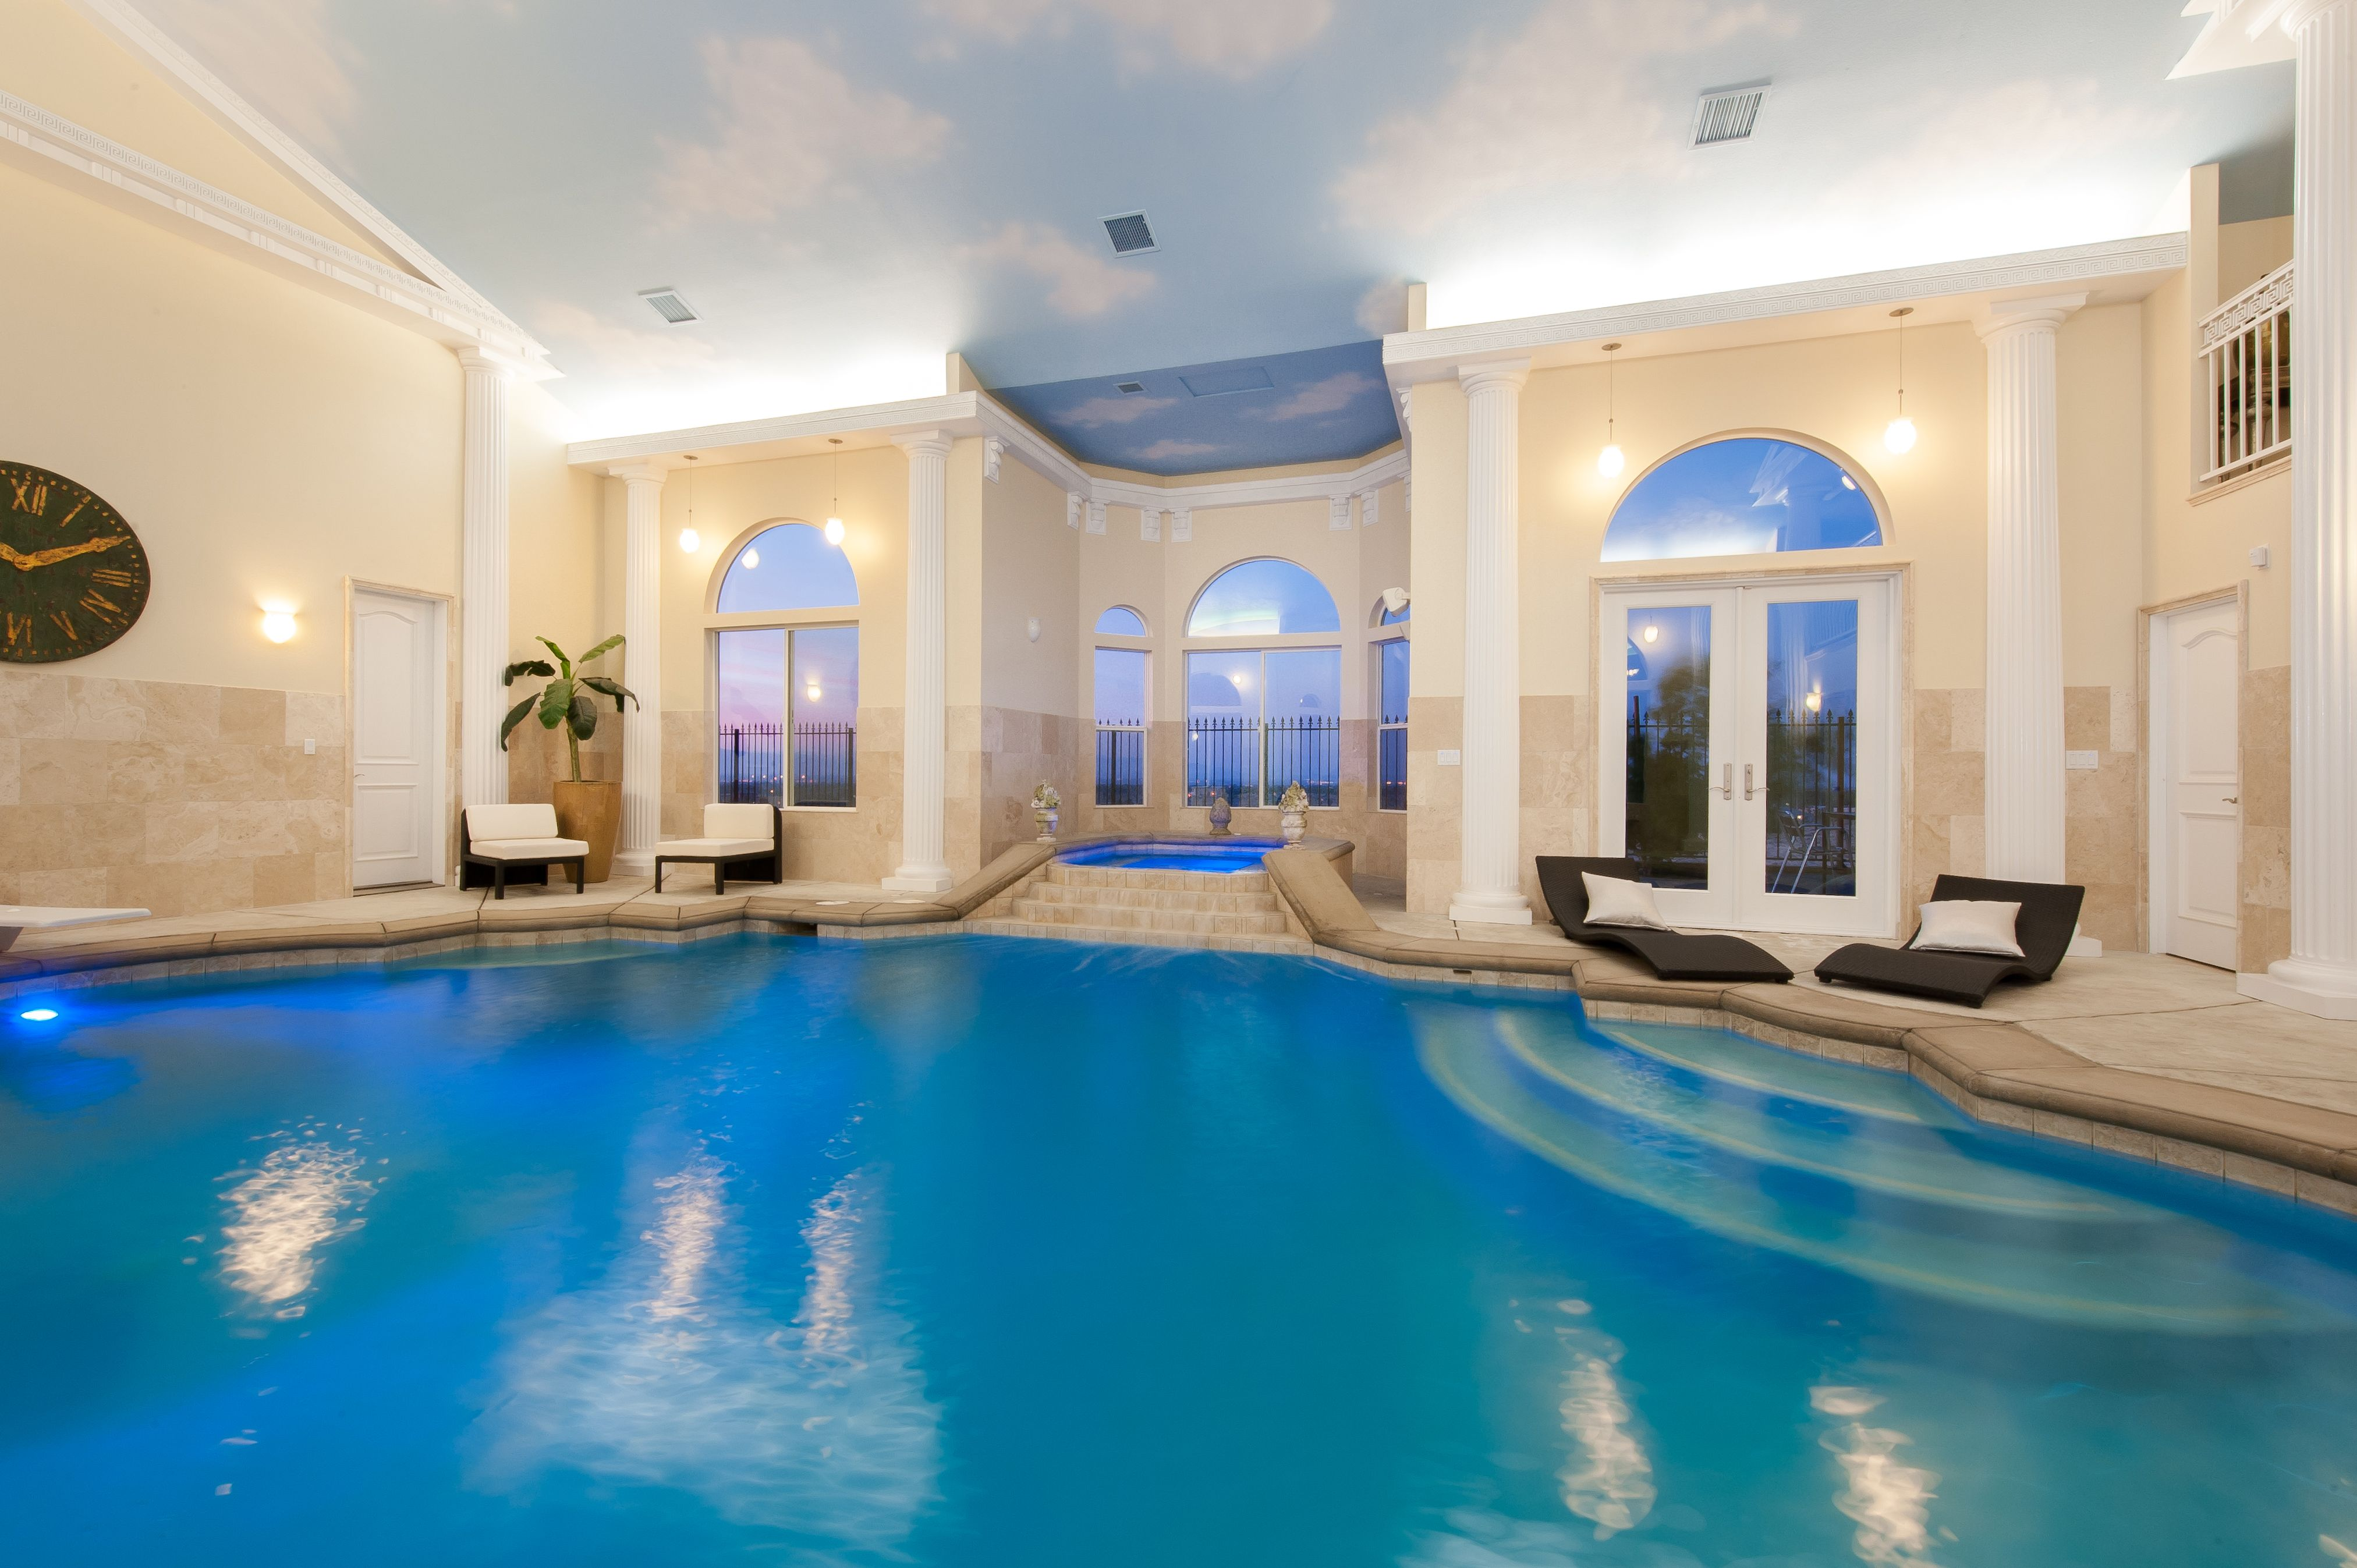 a roman bath-style pool a la ceasar's palace is the perfect place